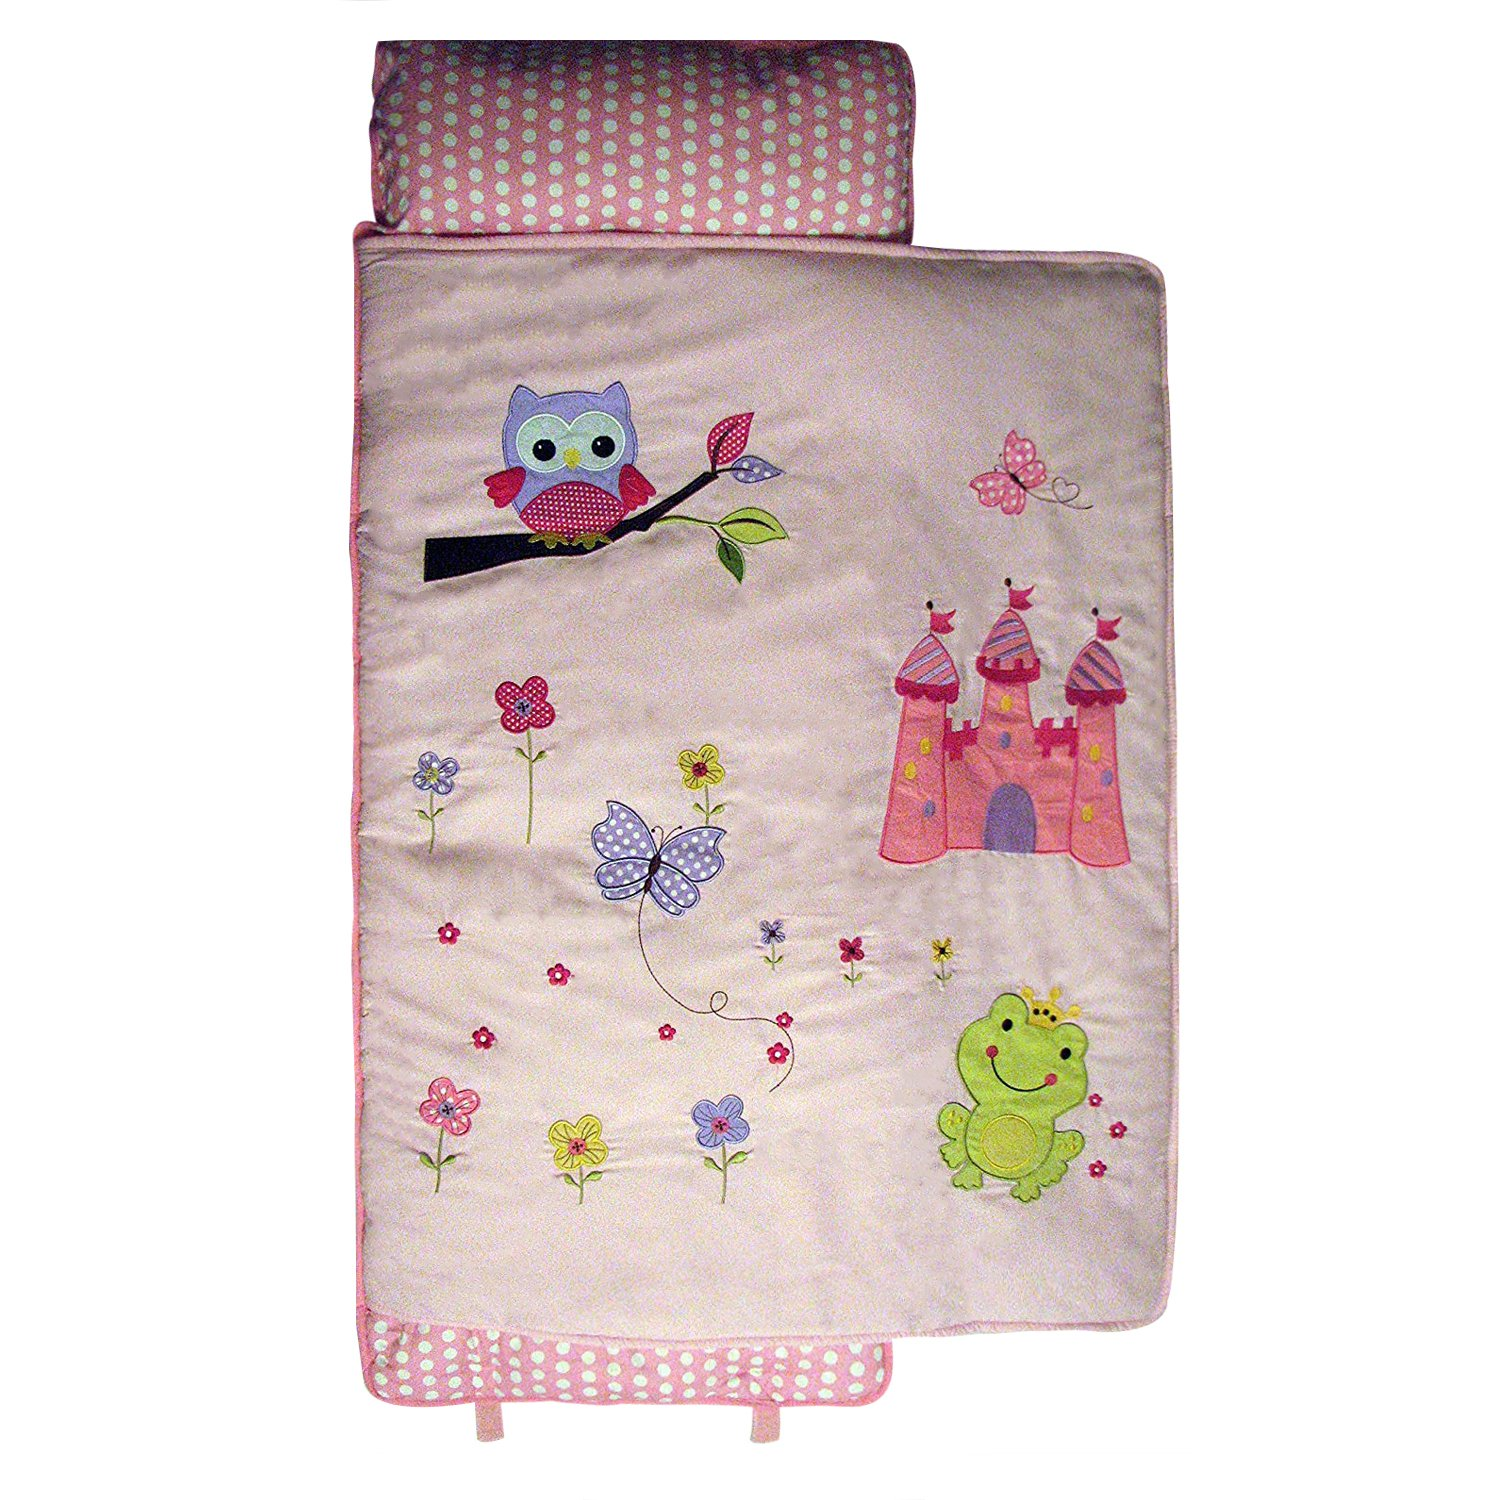 SoHo Nap Mat , Pink Owls Castle (All Hand Embroidery)